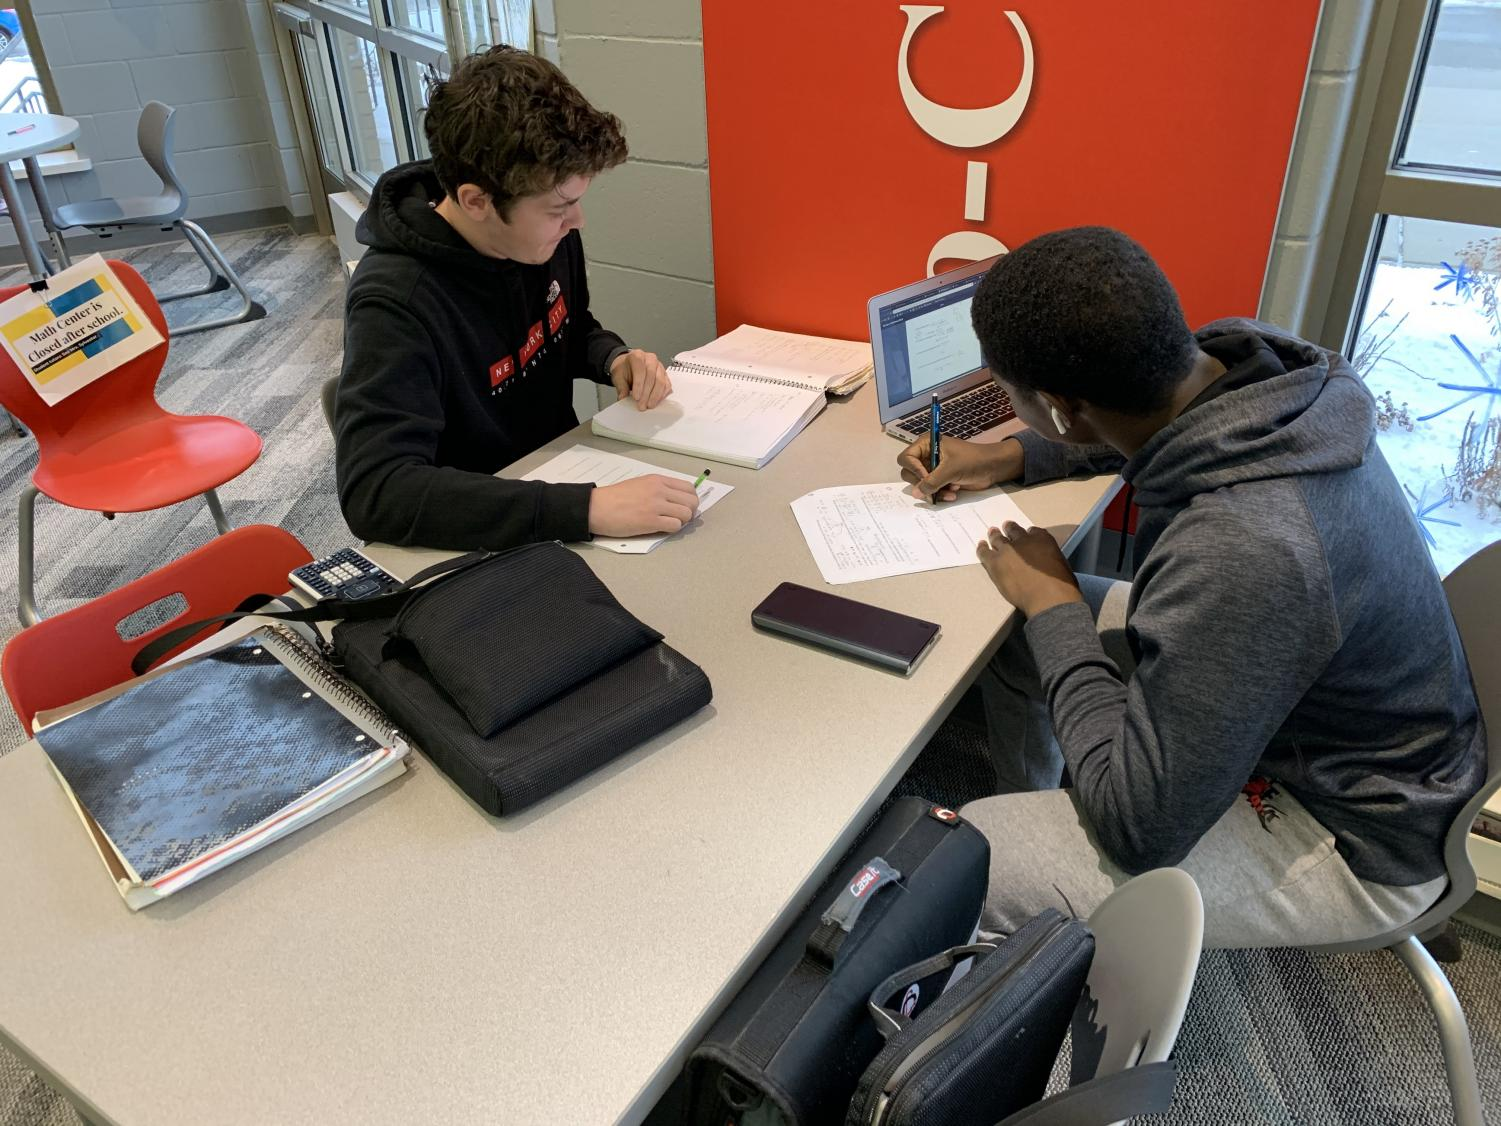 Students studied hard for first semester finals this week. Perhaps they would have been better off if these finals had been before break.